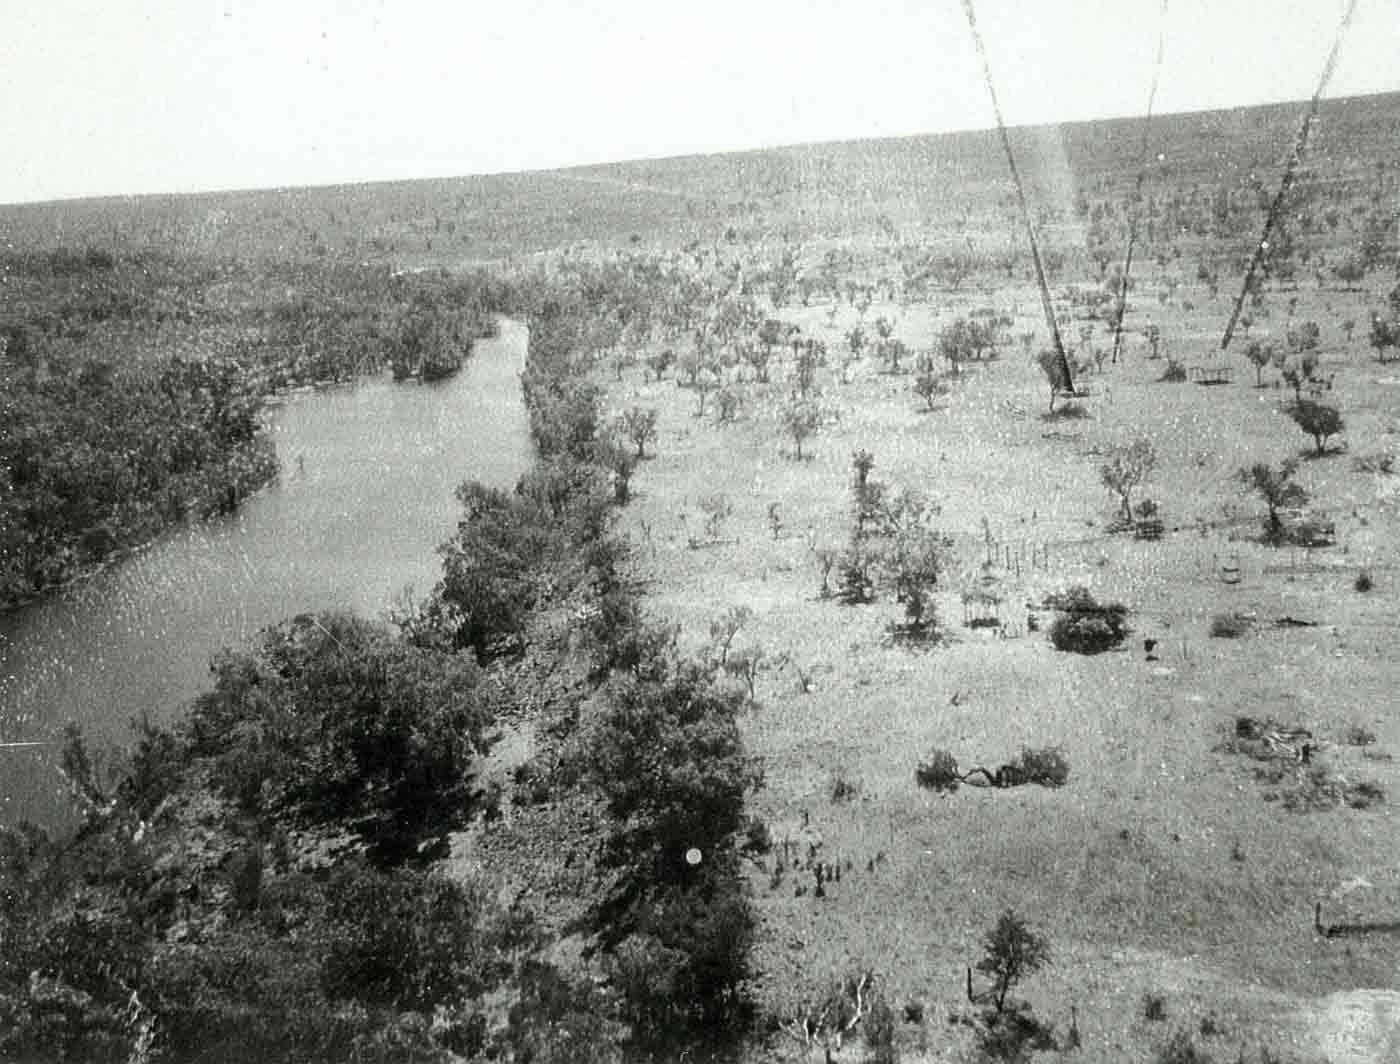 Black and white photo of an aerial view of a river lined with trees and sparse bush land beyond.